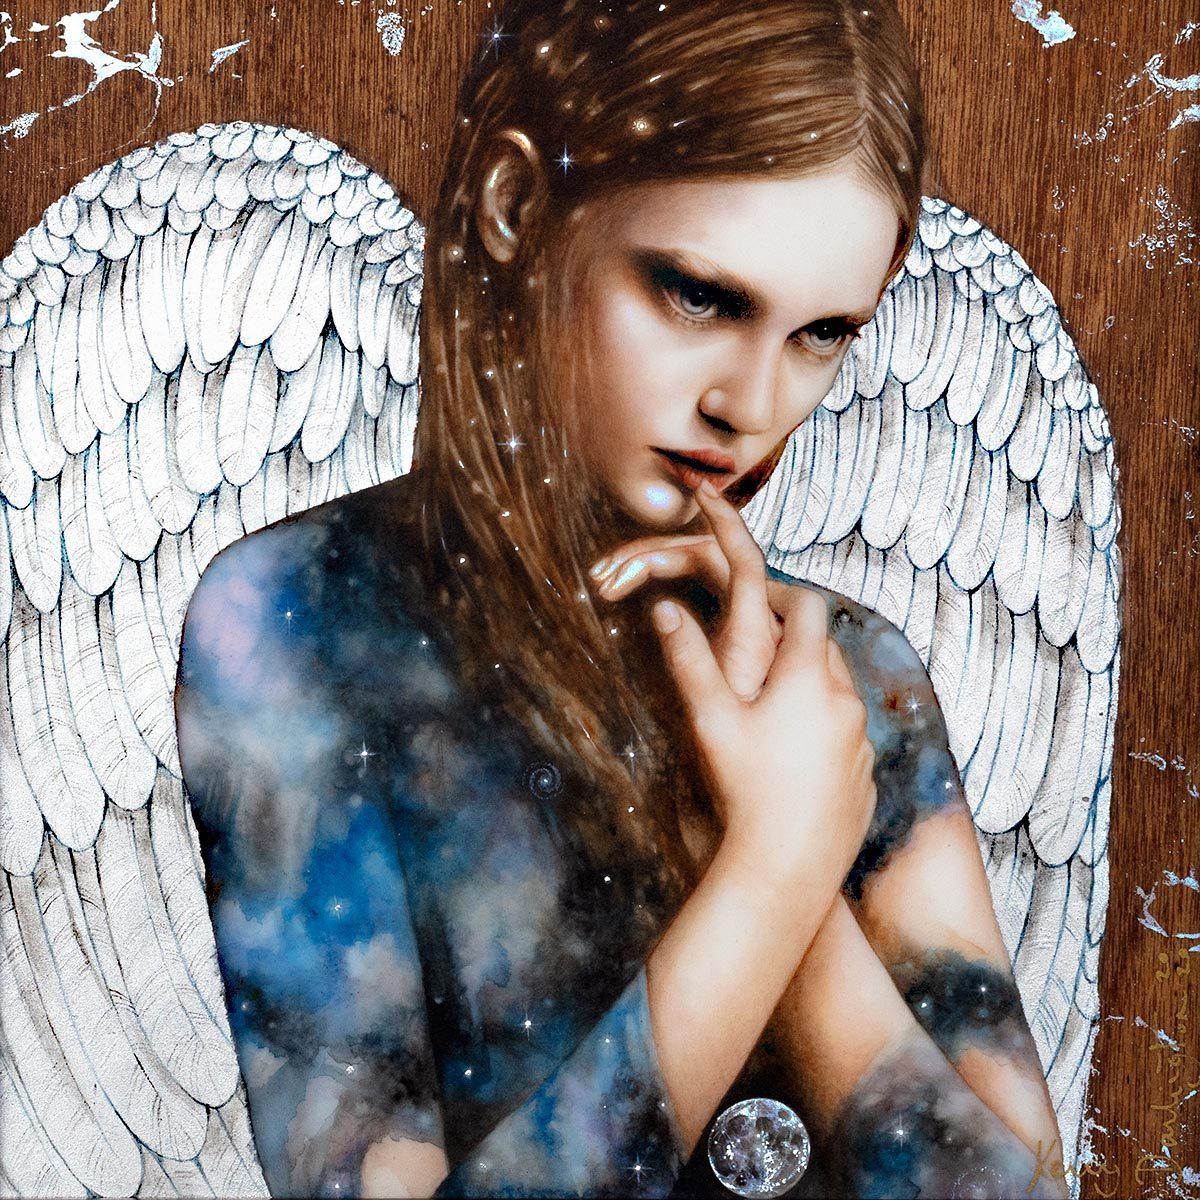 Cosmic Angel - Original - SOLD